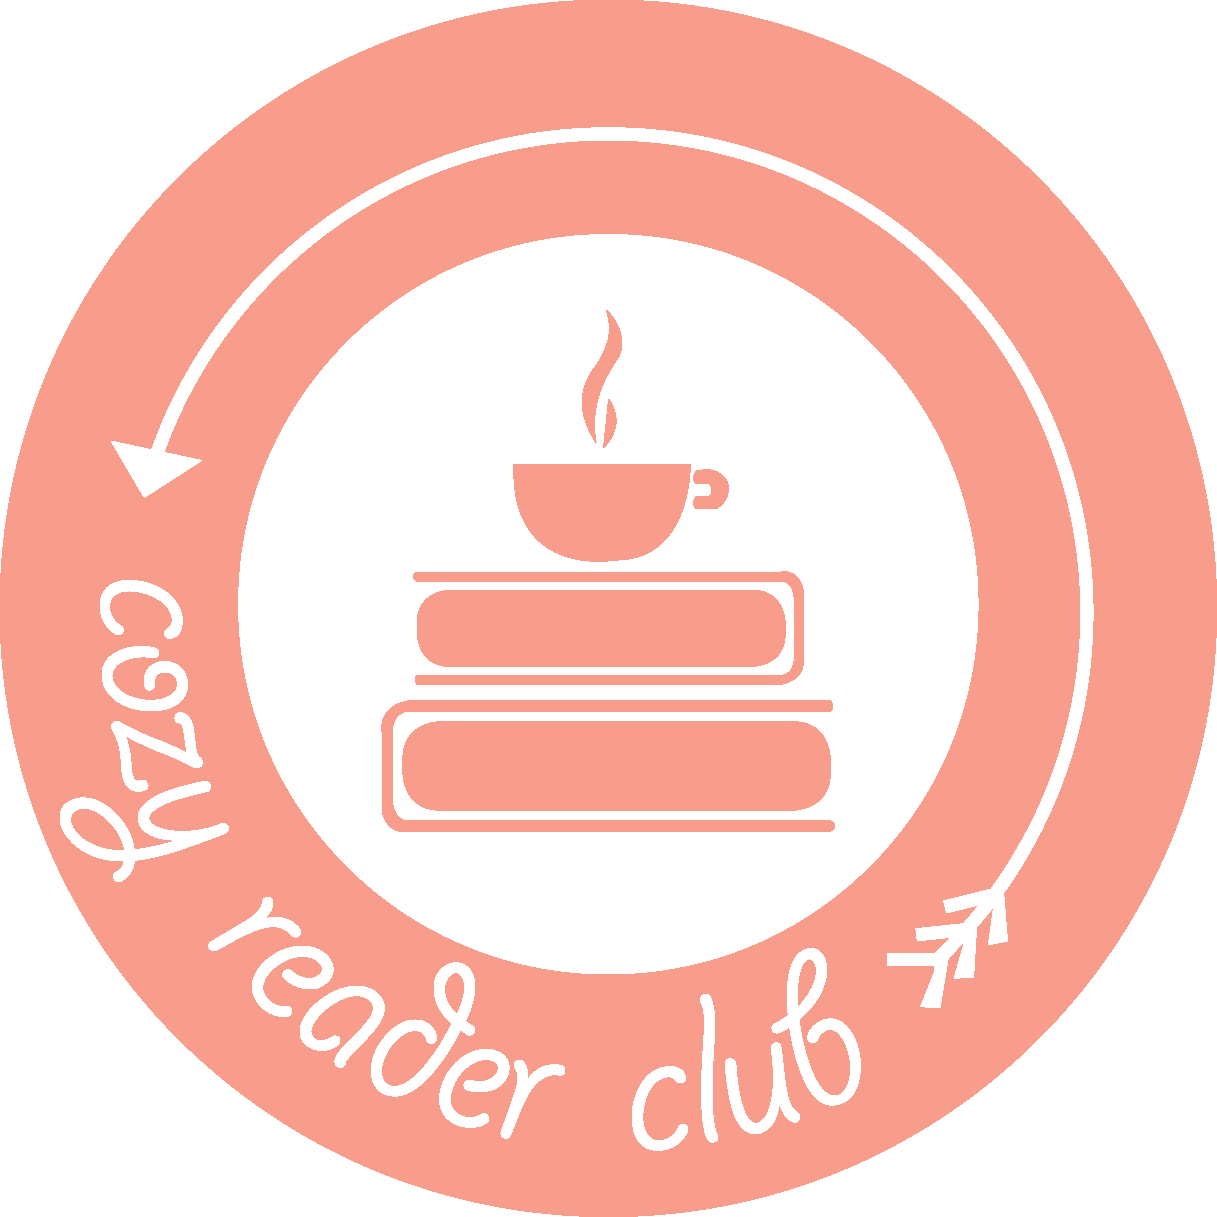 Coupon clipart coupon book. Cozy reader club subscription